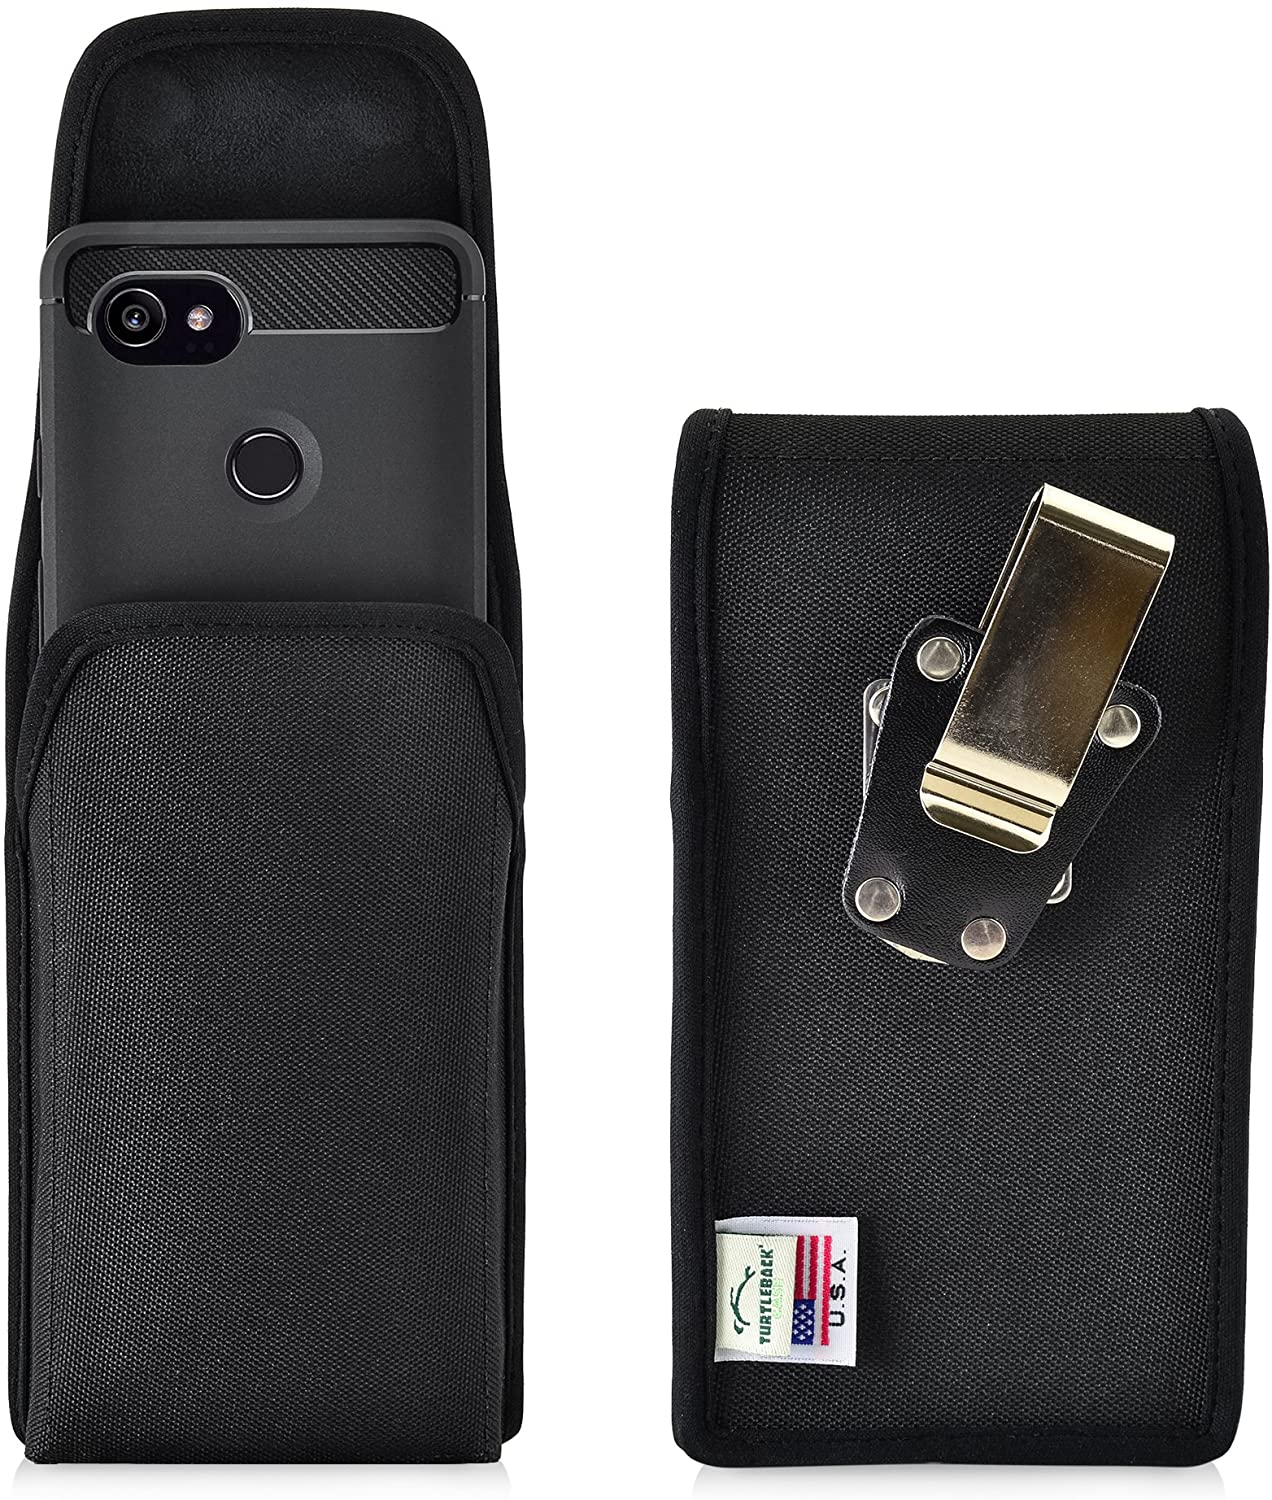 Turtleback Belt Clip Case Made for Google Pixel 2 XL Black Vertical Holster Nylon Pouch with Heavy Duty Rotating Belt Clip Made in USA